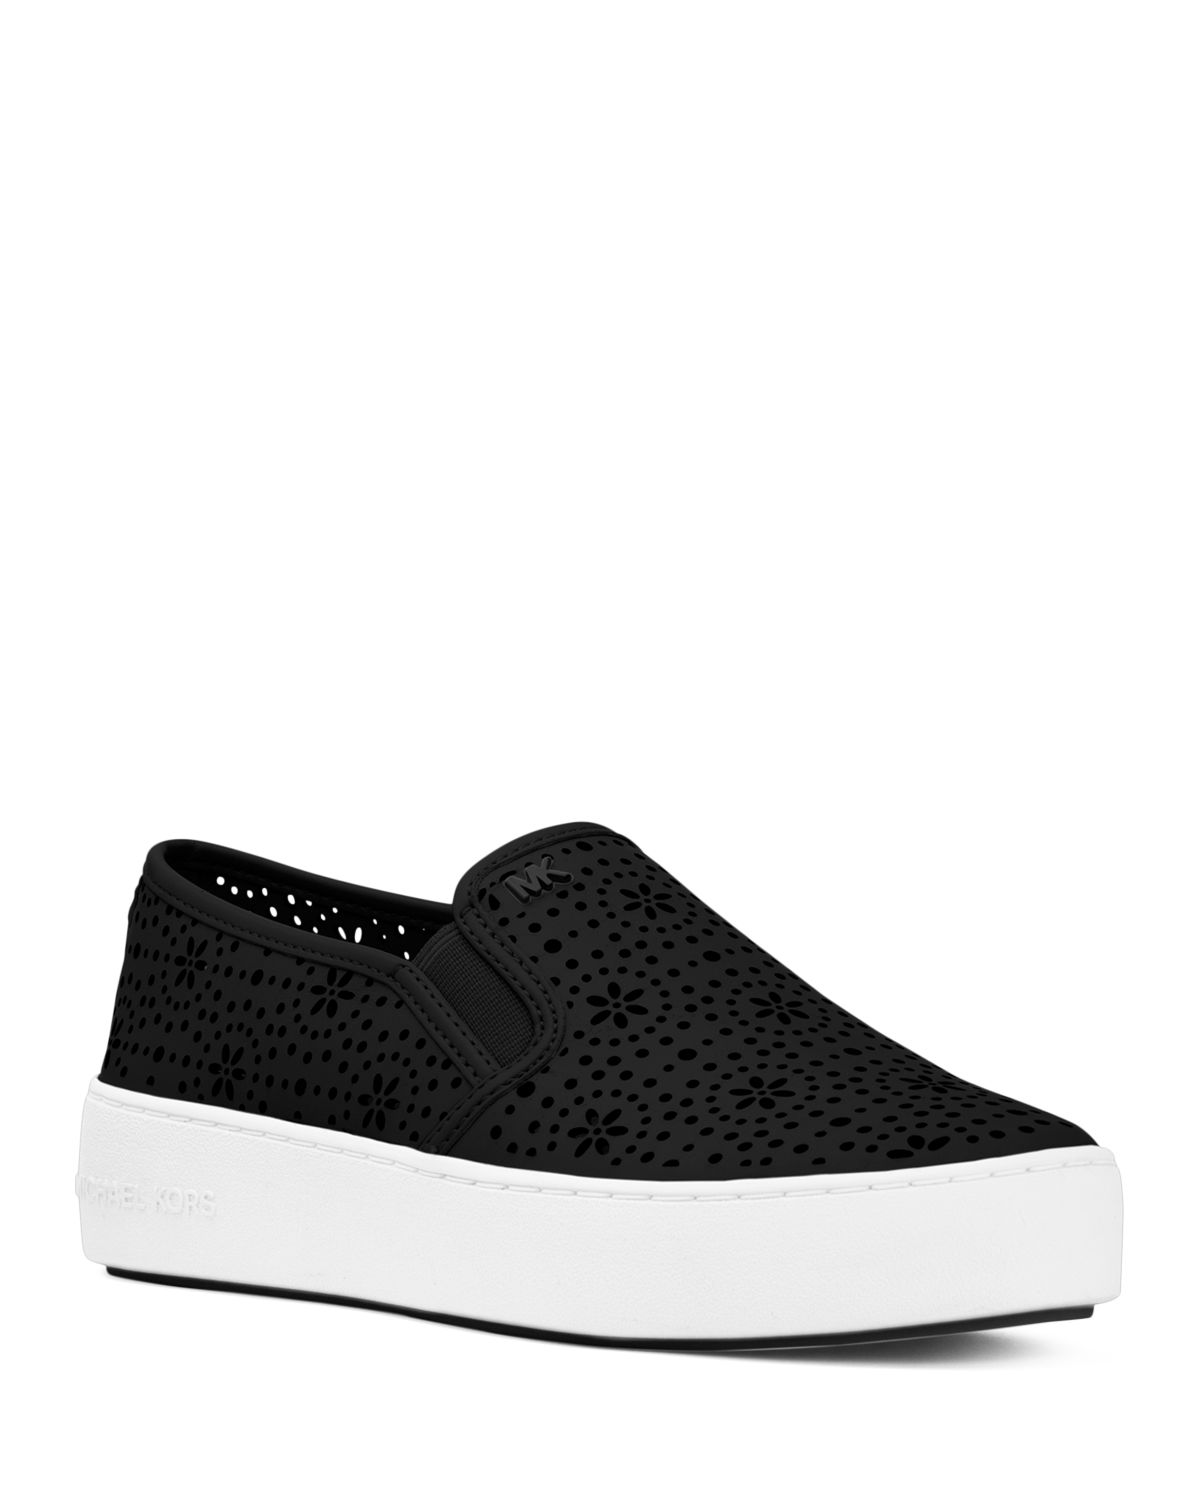 perforated wedge heel sneakers - Black Michael Kors